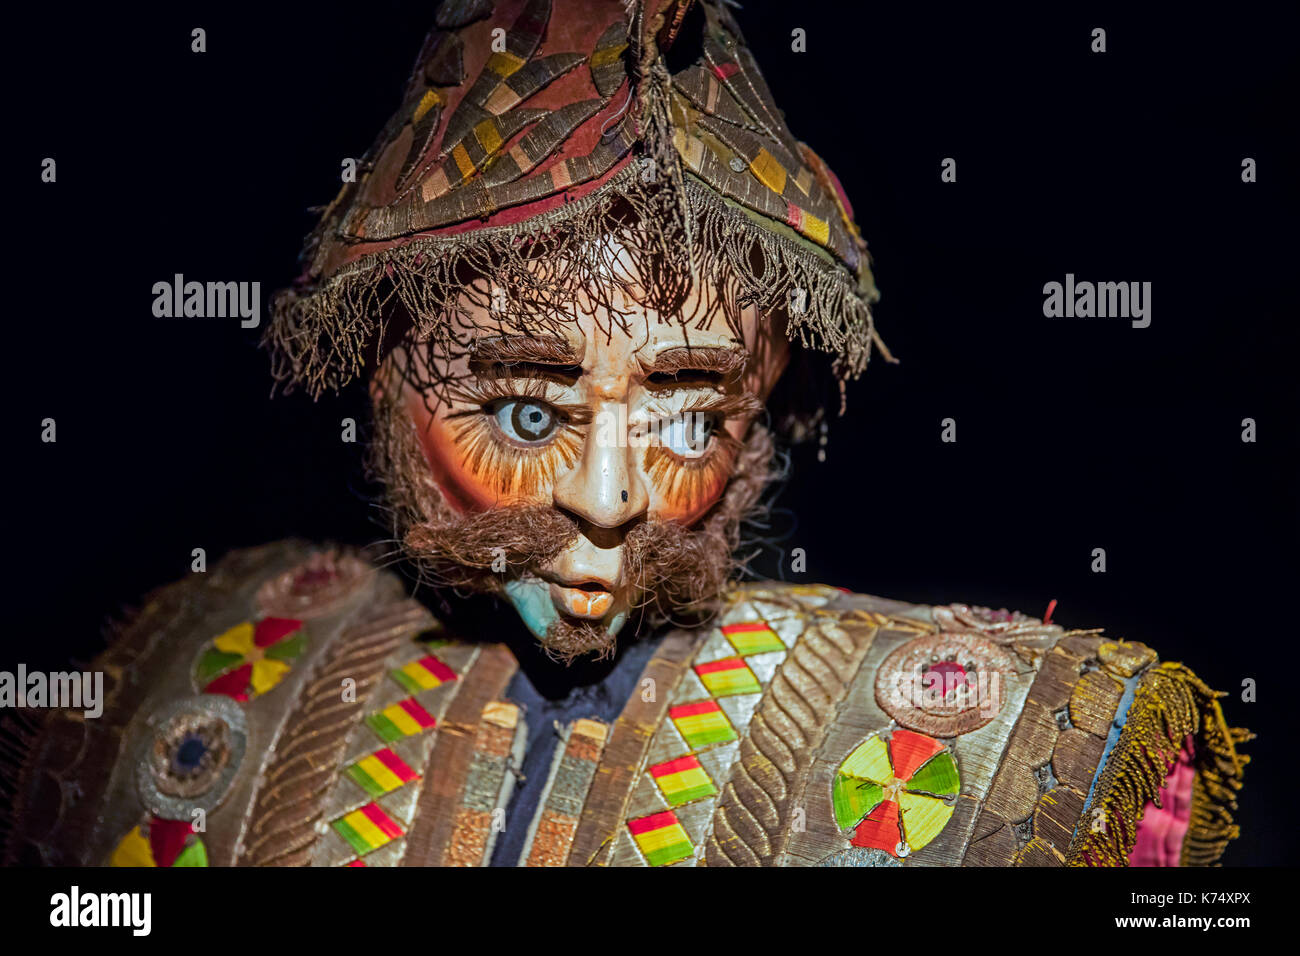 Traditional ornate mask in the Museo Nacional de Etnografía y Folklore / MUSEF, ethnographic museum in Sucre, Bolivia - Stock Image